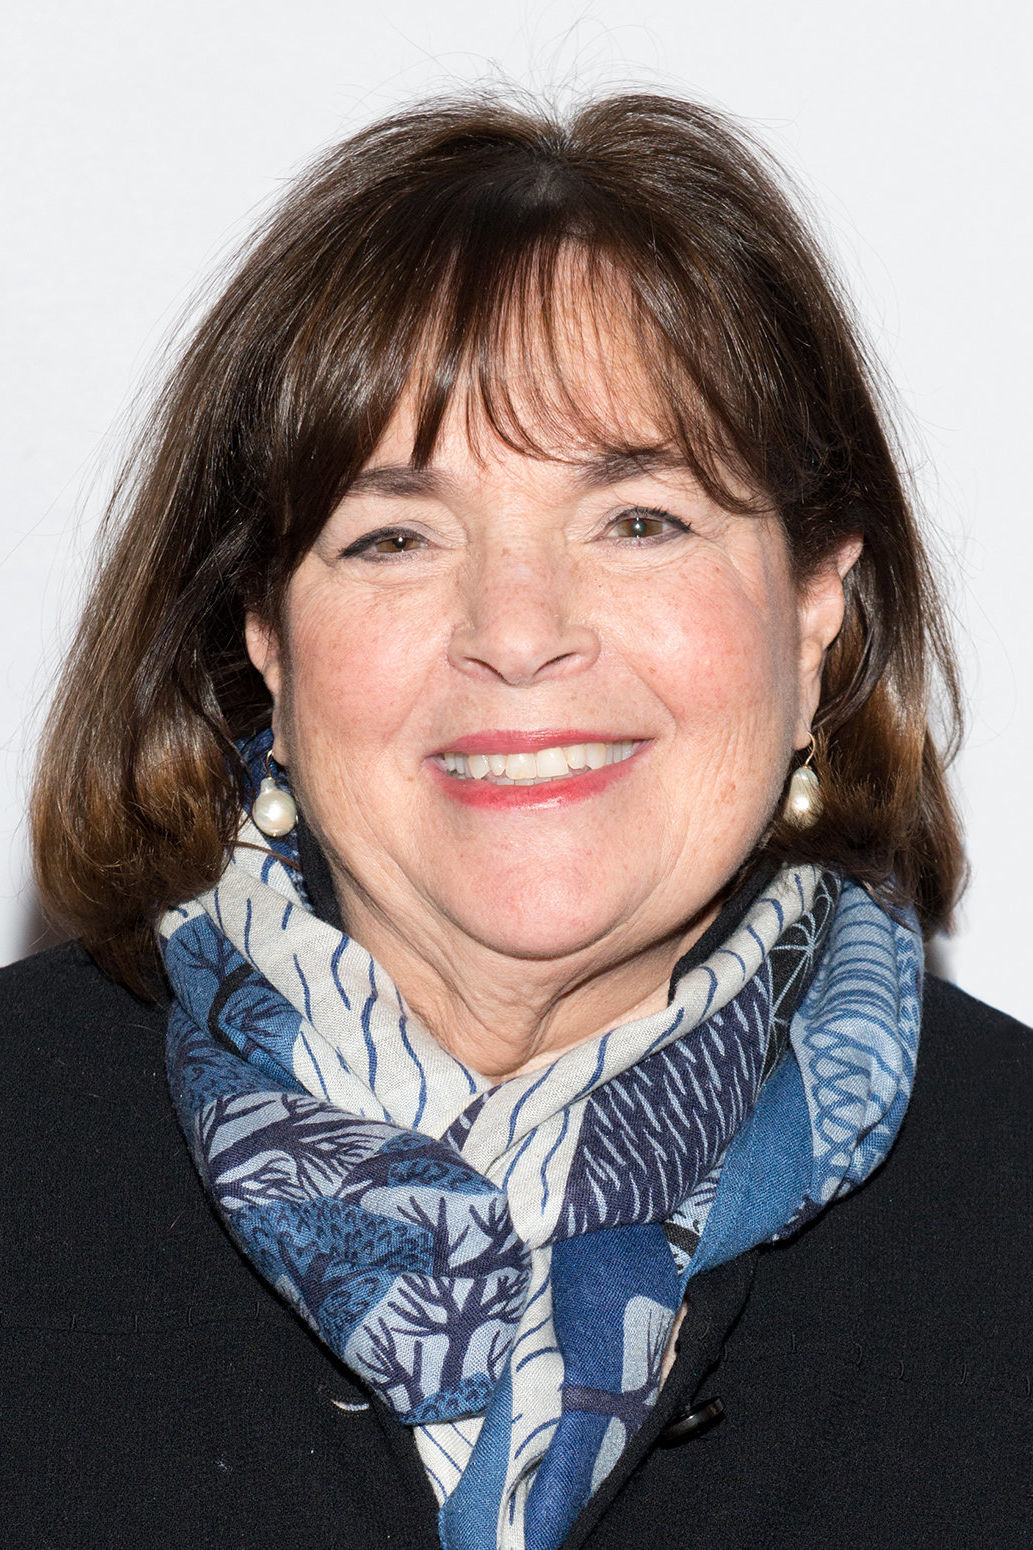 WATCH: See Ina Garten's Actual Home Kitchen